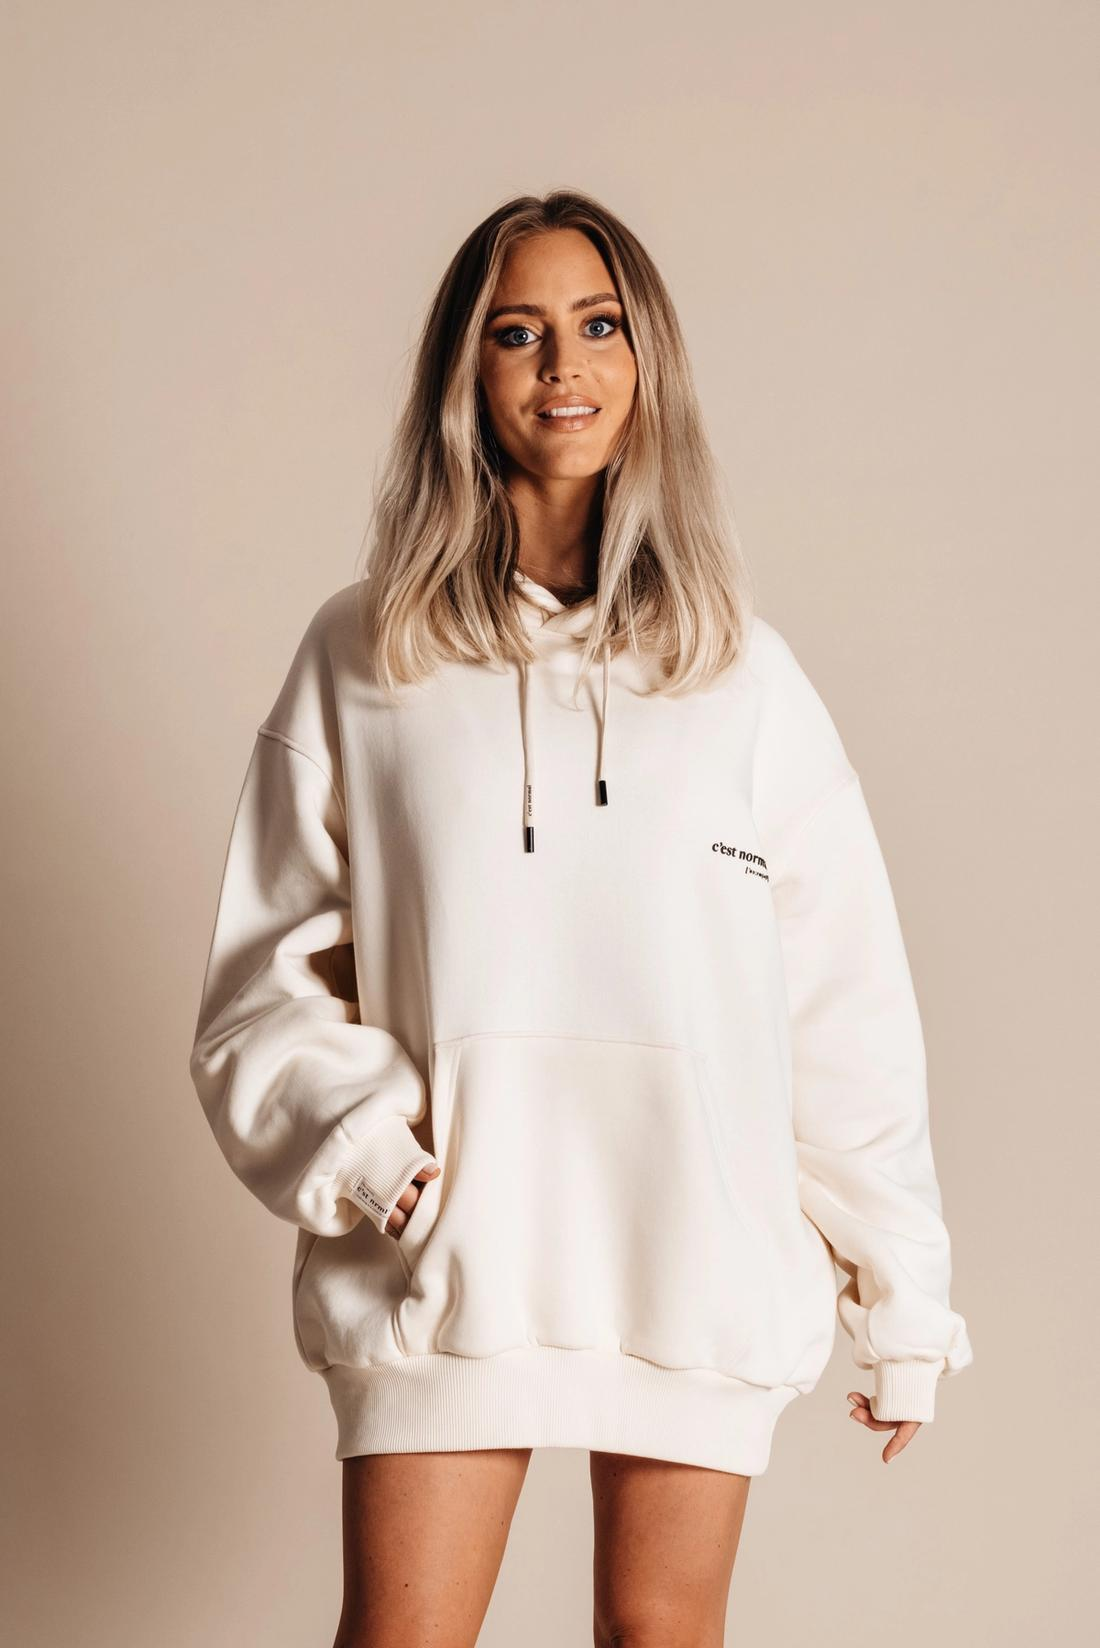 The Oversized Hoodie